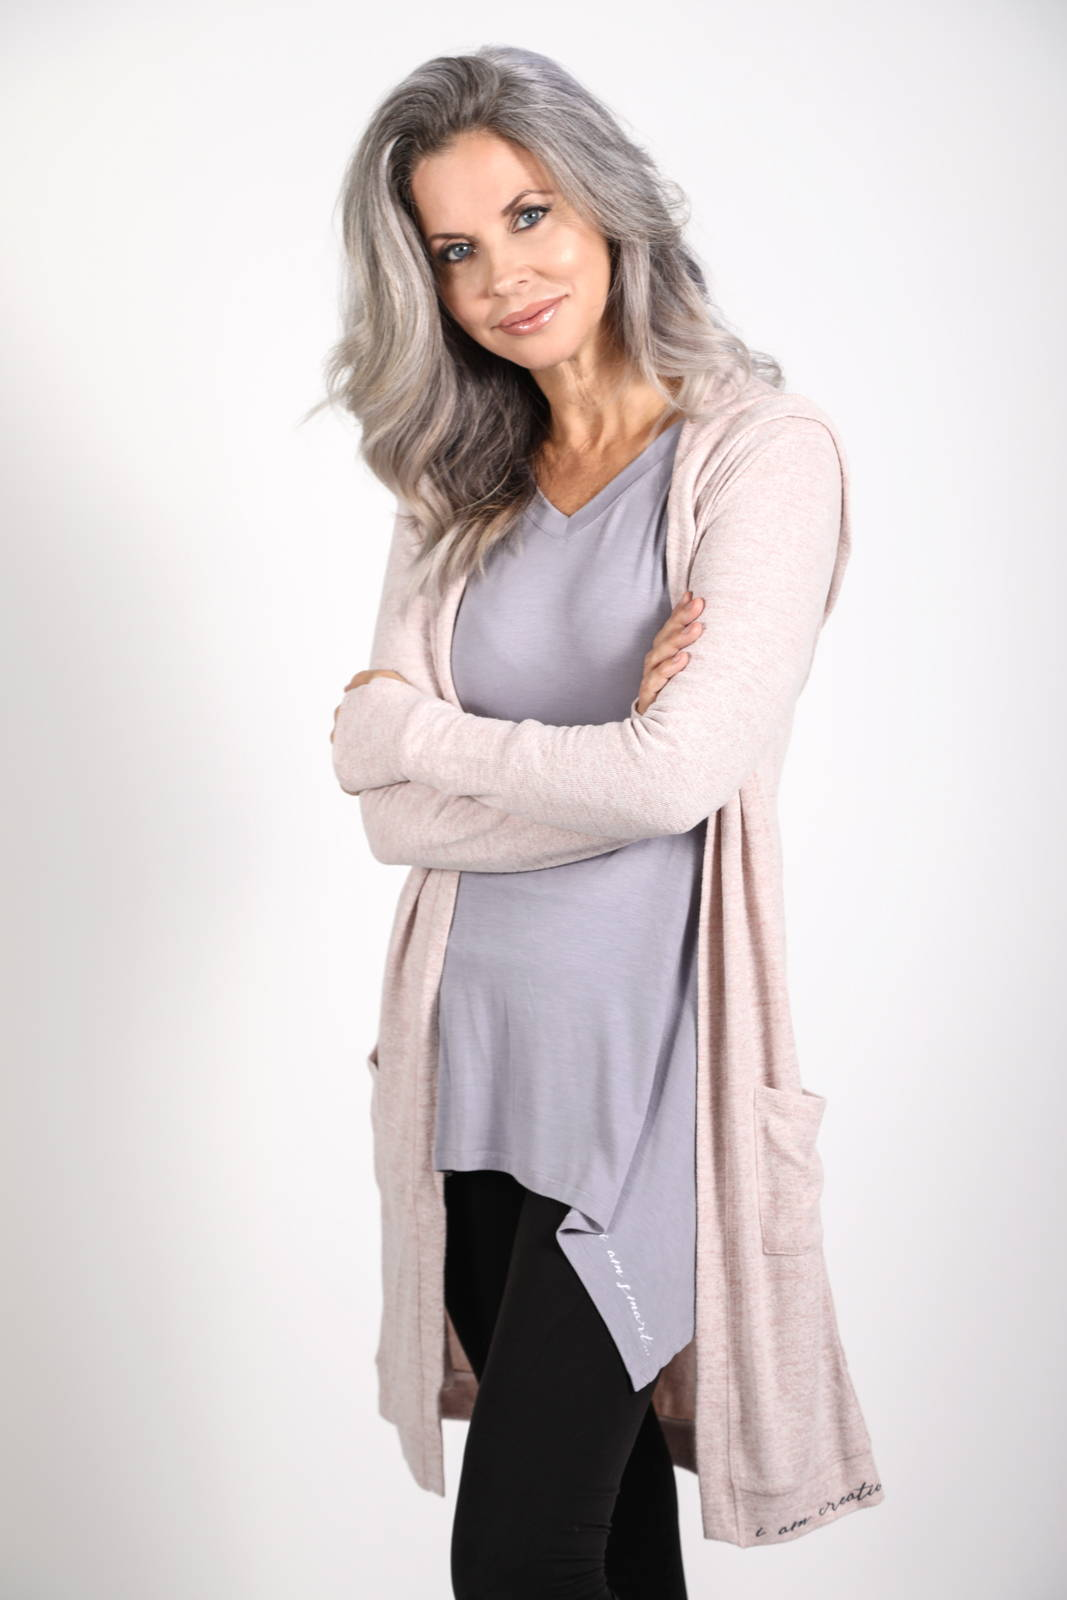 Model wearing the Solas Tee in Lavender Grey with the Feny Cardigan in Heather Blush